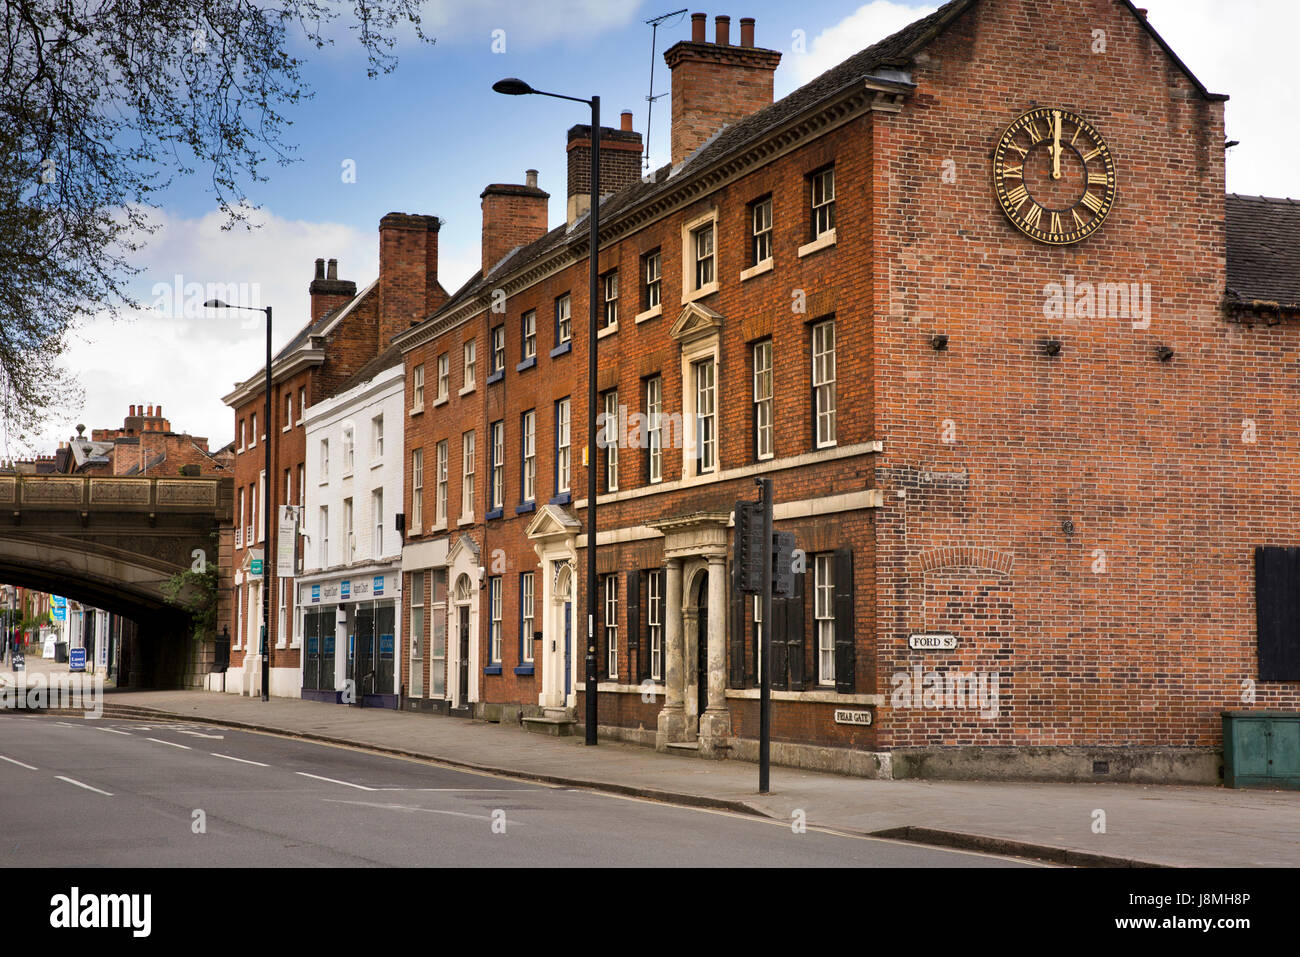 UK, England, Derbyshire, Derby, Friargate, former Diocesan School circa 1840  with clock on gable wall - Stock Image